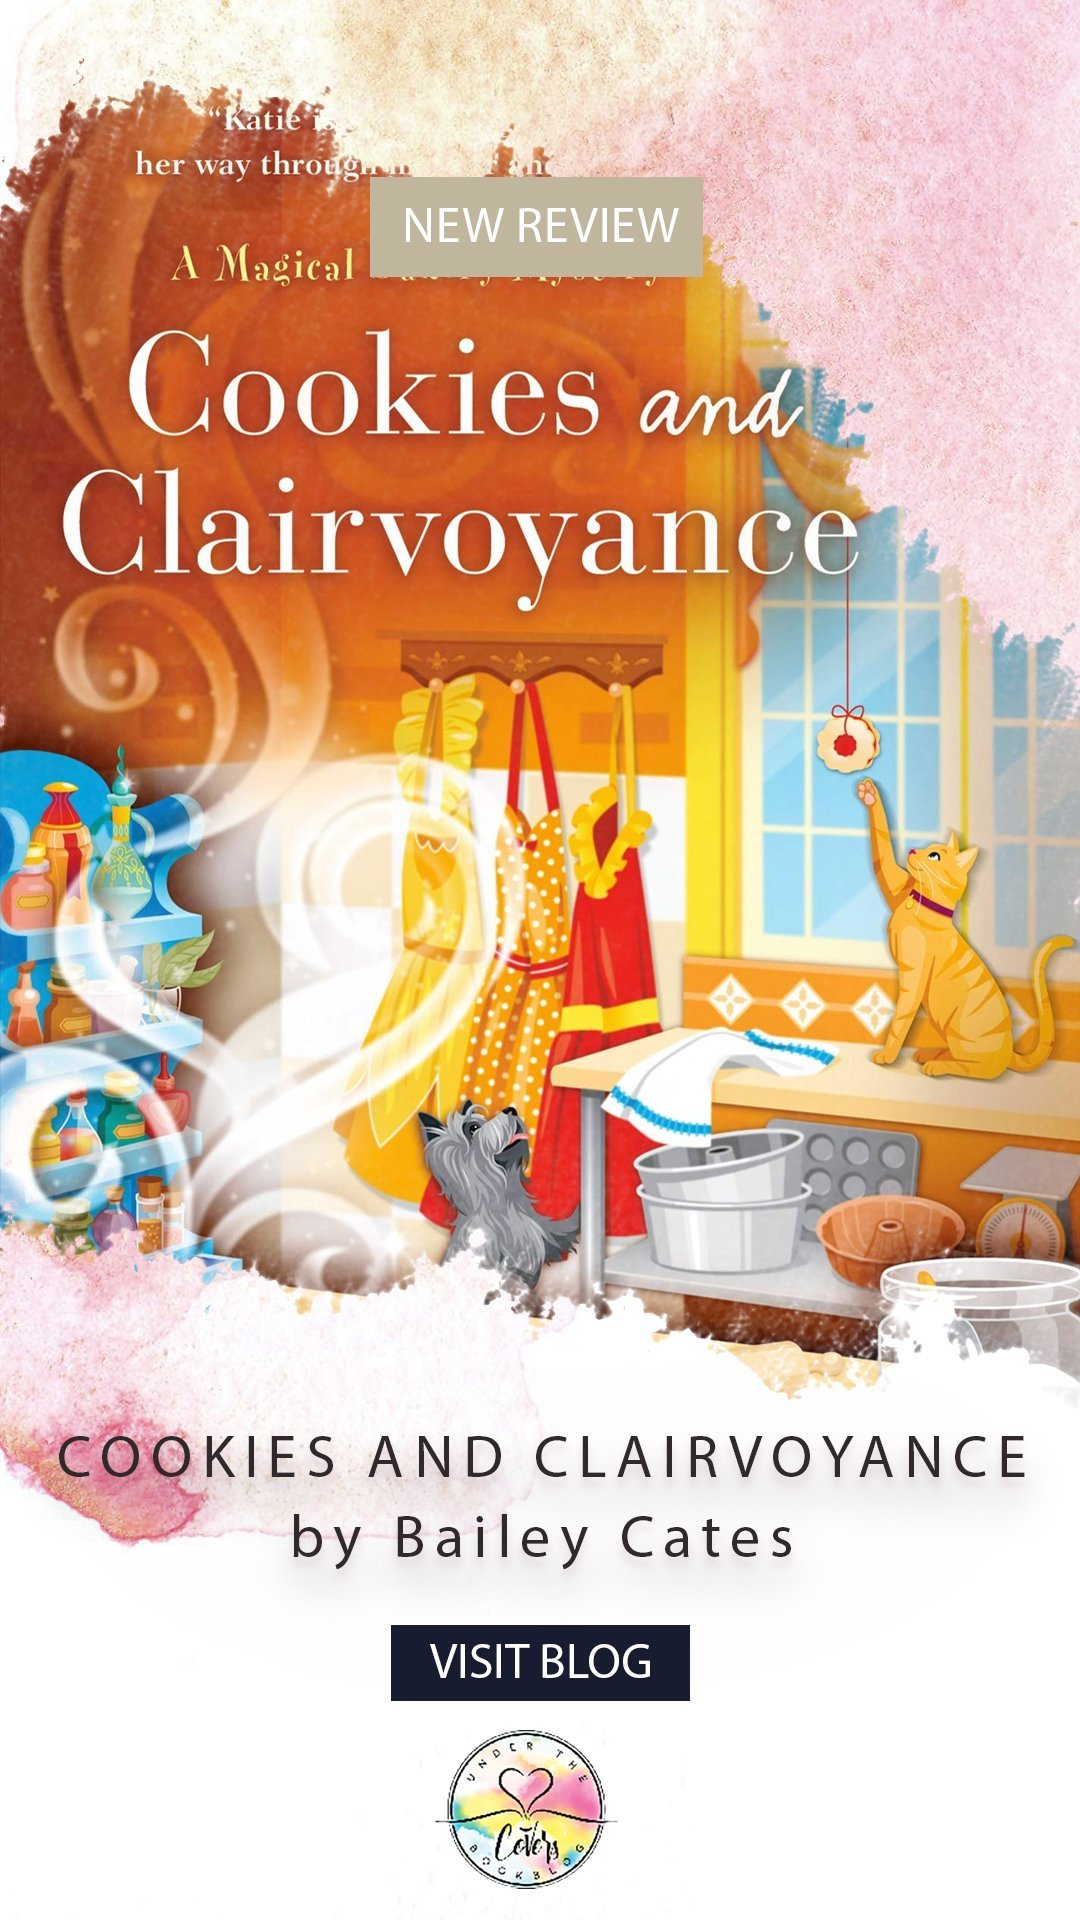 ARC Review: Cookies and Clairvoyance by Bailey Cates